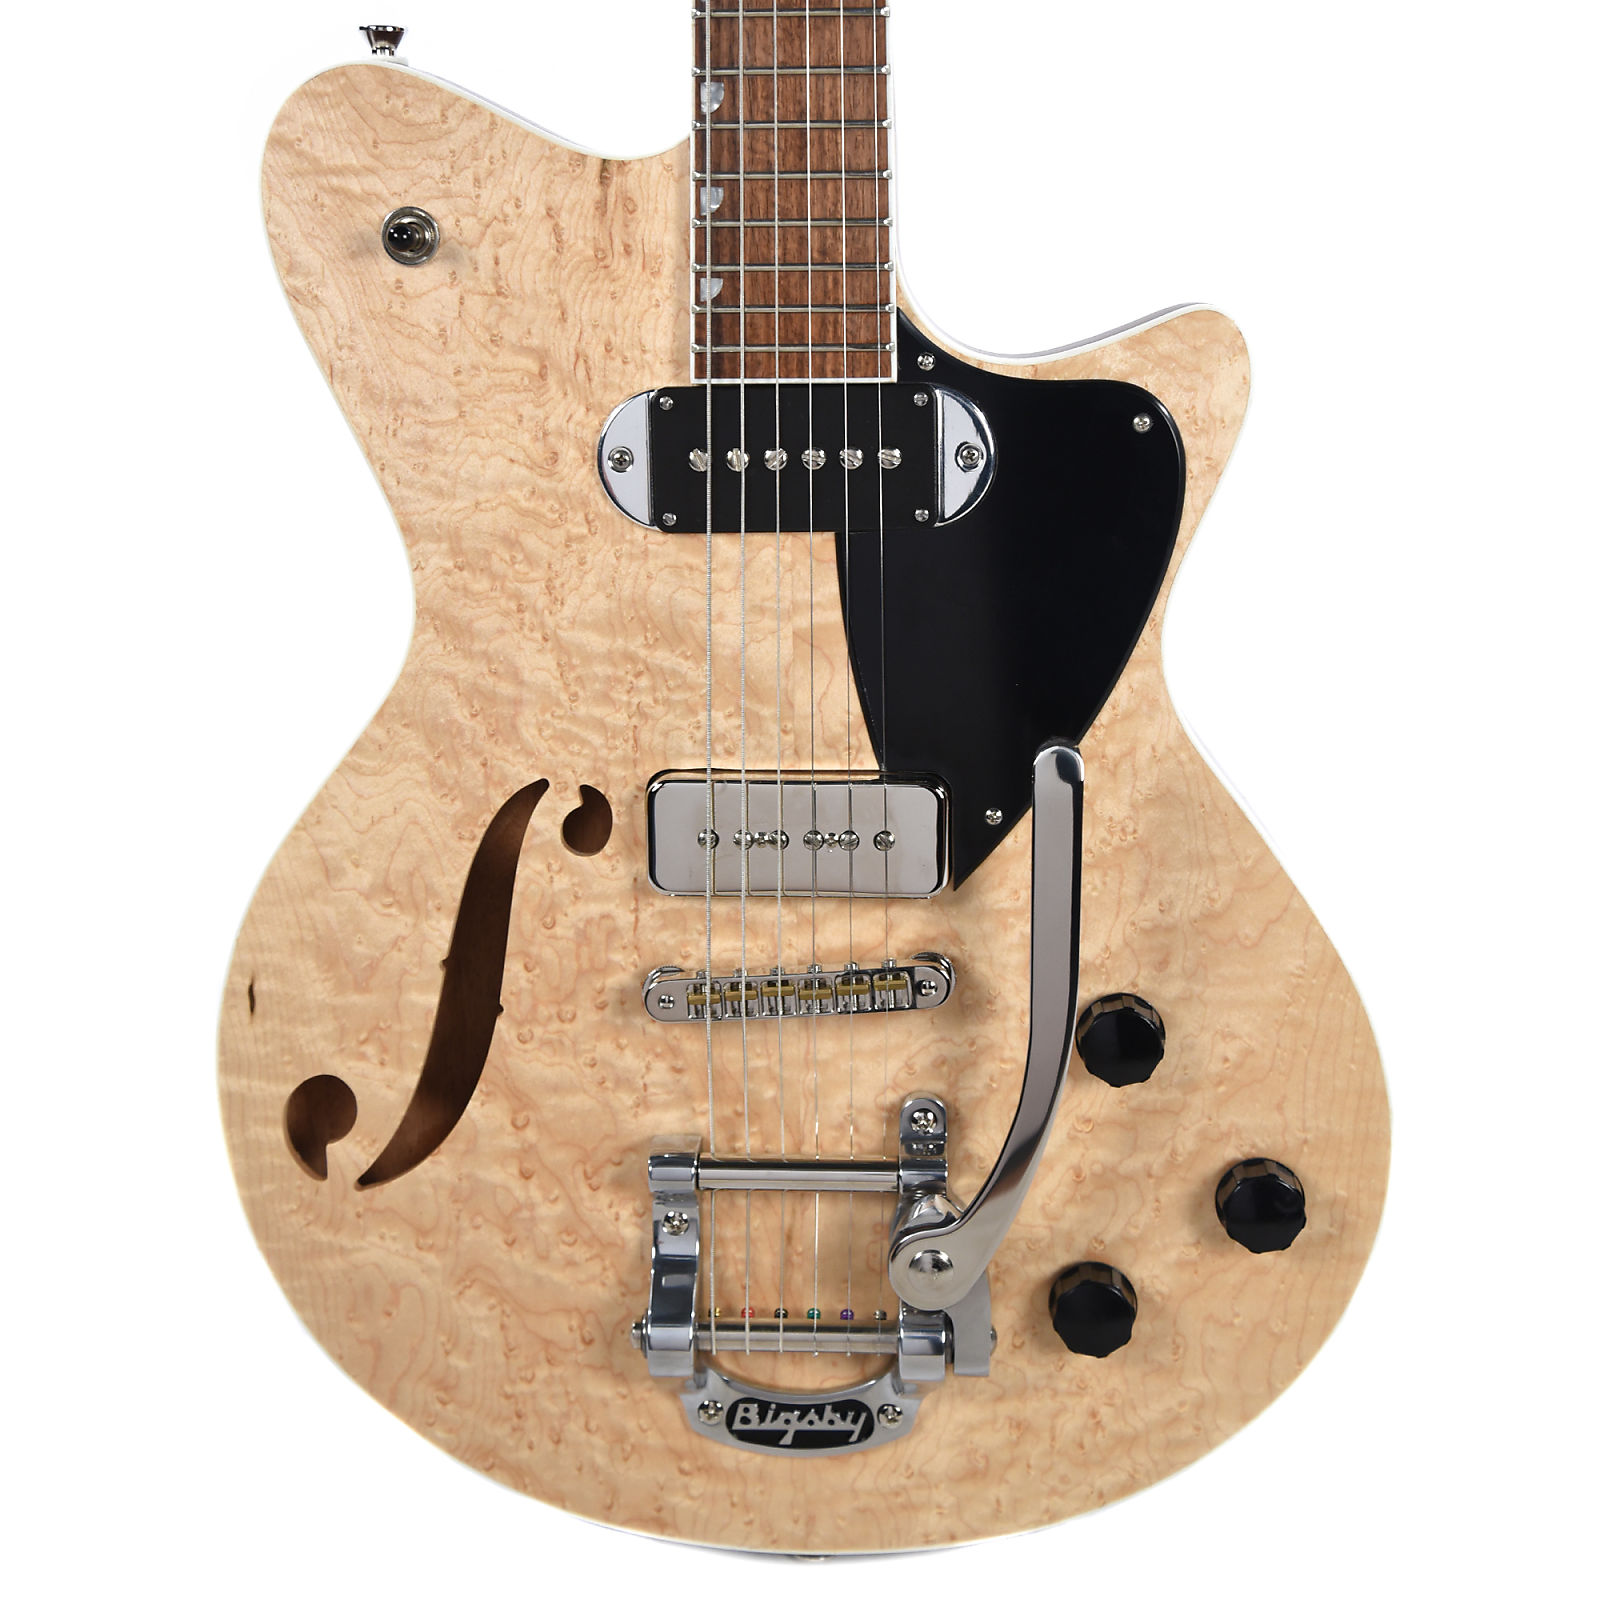 Koll Duo Glide Birdseye Maple (Serial #17537)